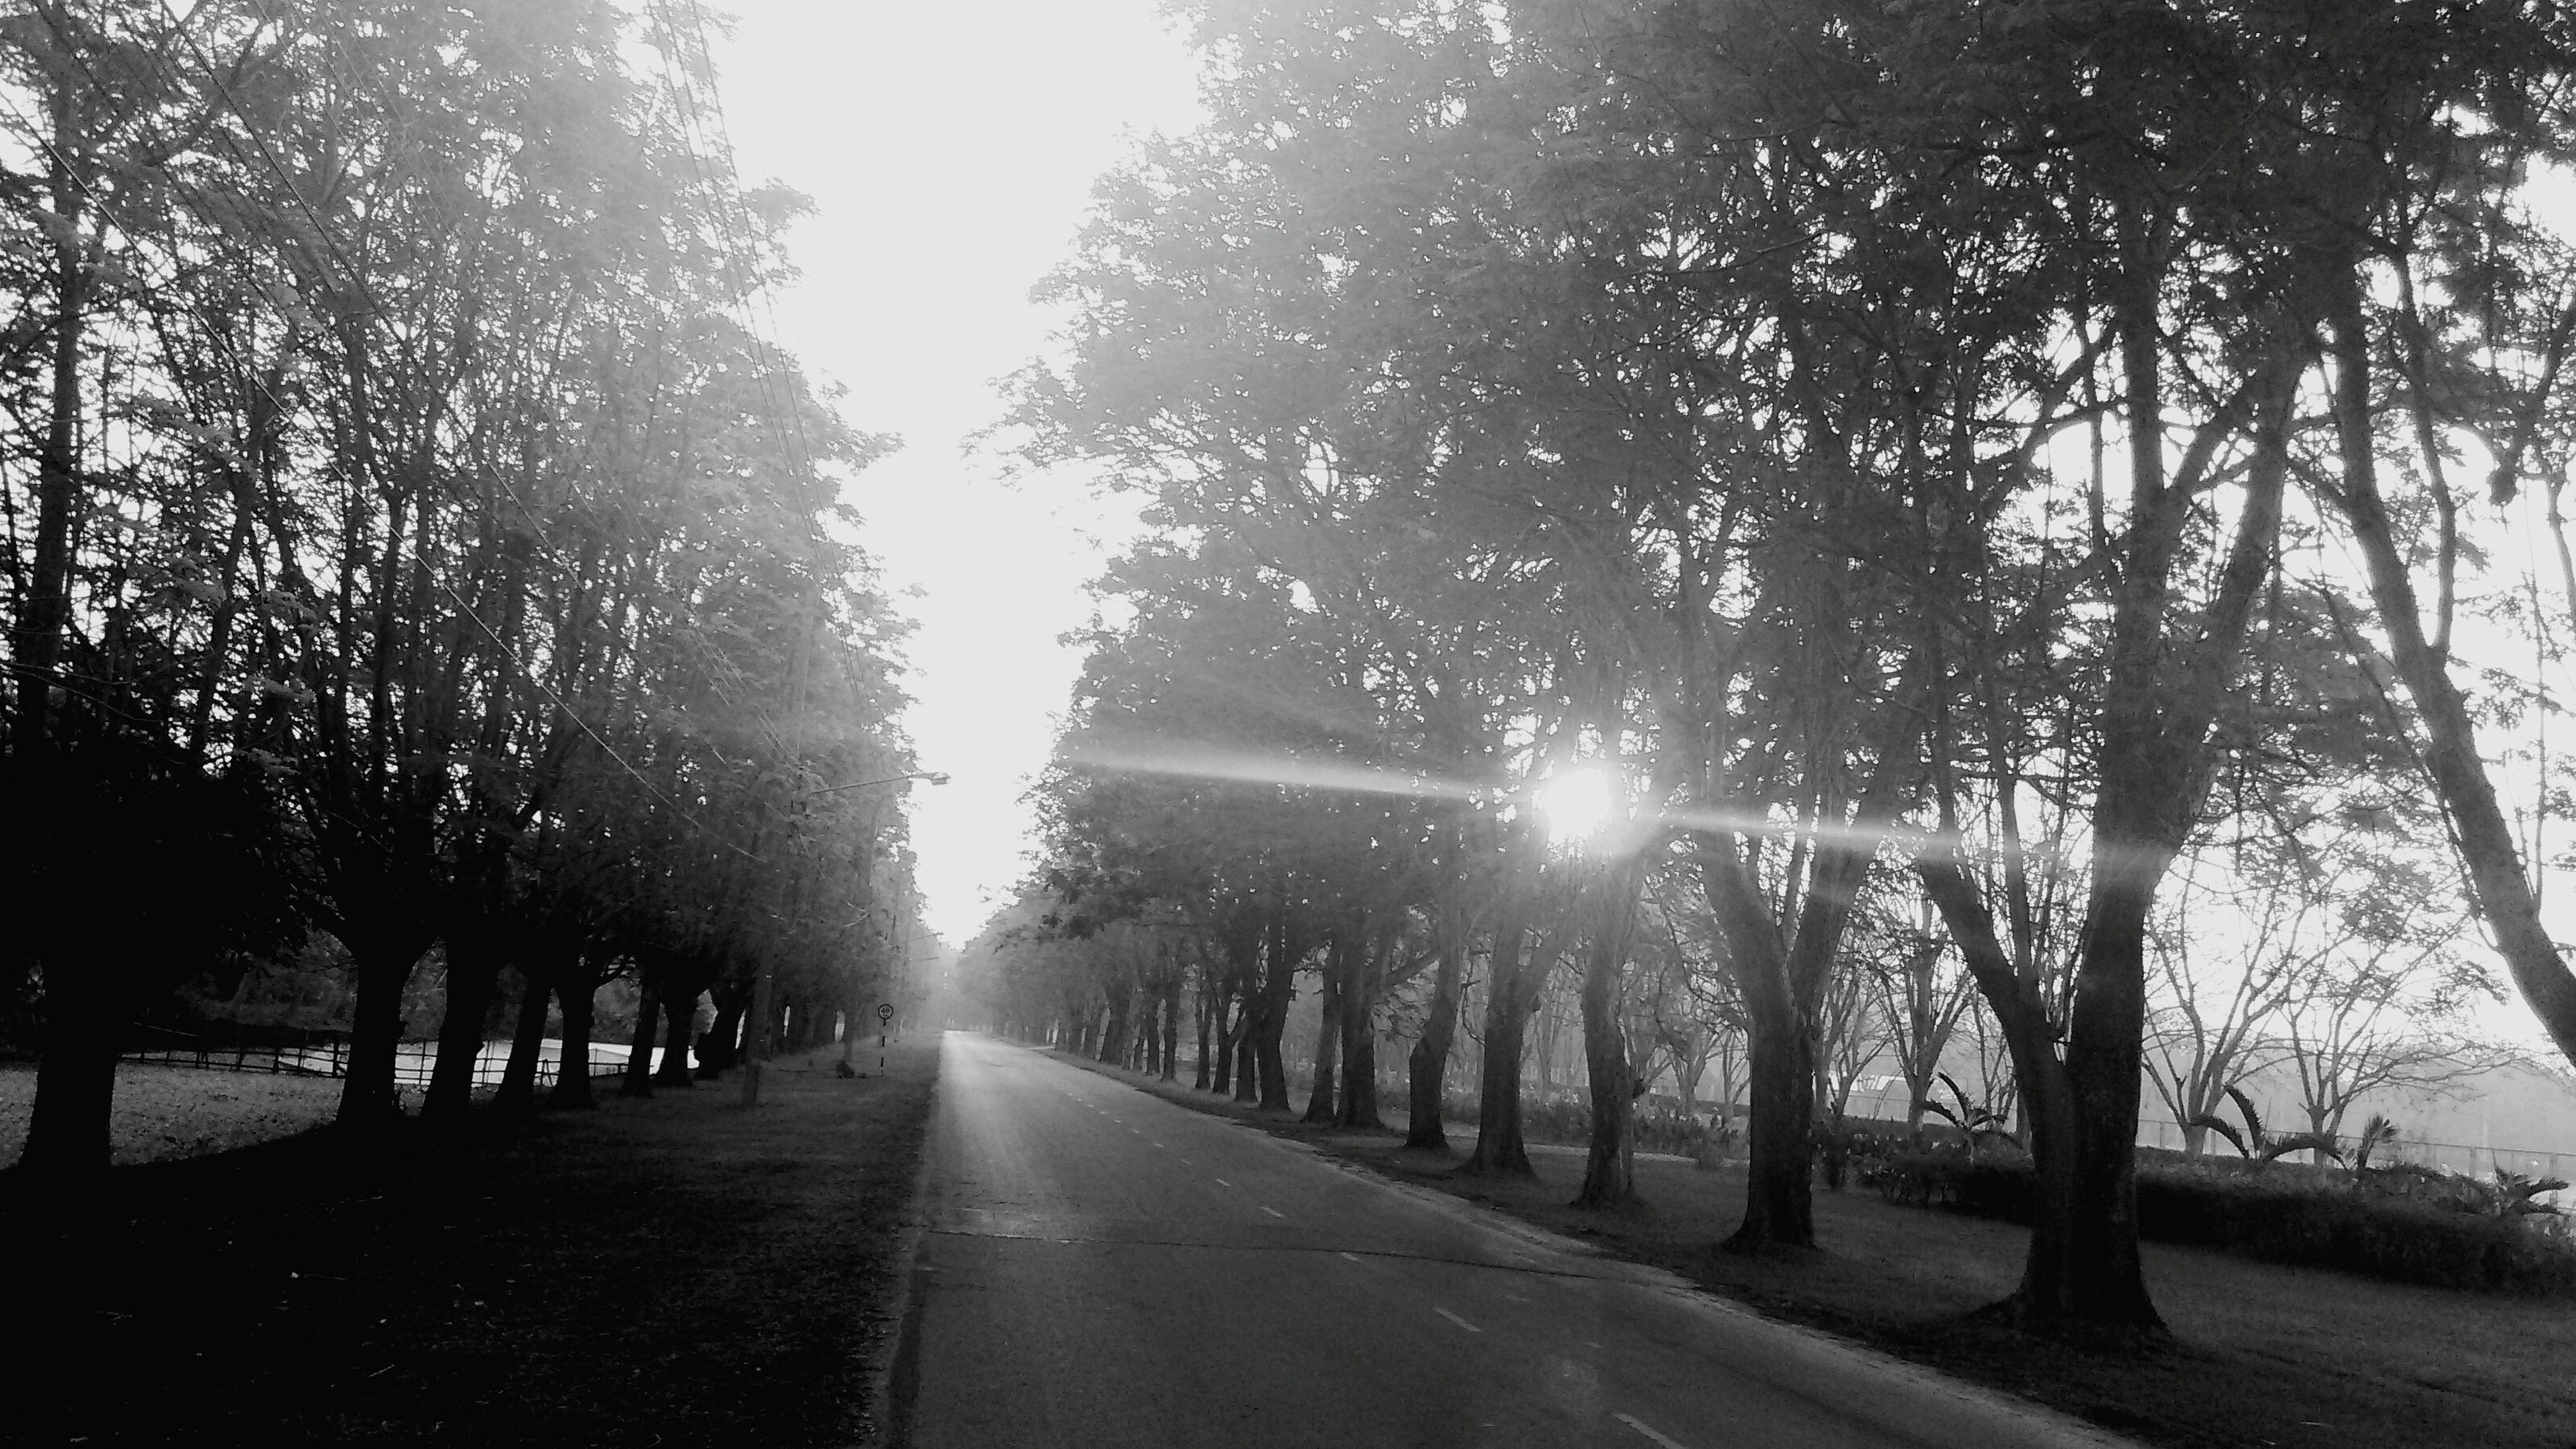 the way forward, diminishing perspective, tree, road, vanishing point, transportation, sun, sunlight, tranquility, treelined, sunbeam, country road, empty road, nature, street, tranquil scene, lens flare, sky, road marking, silhouette